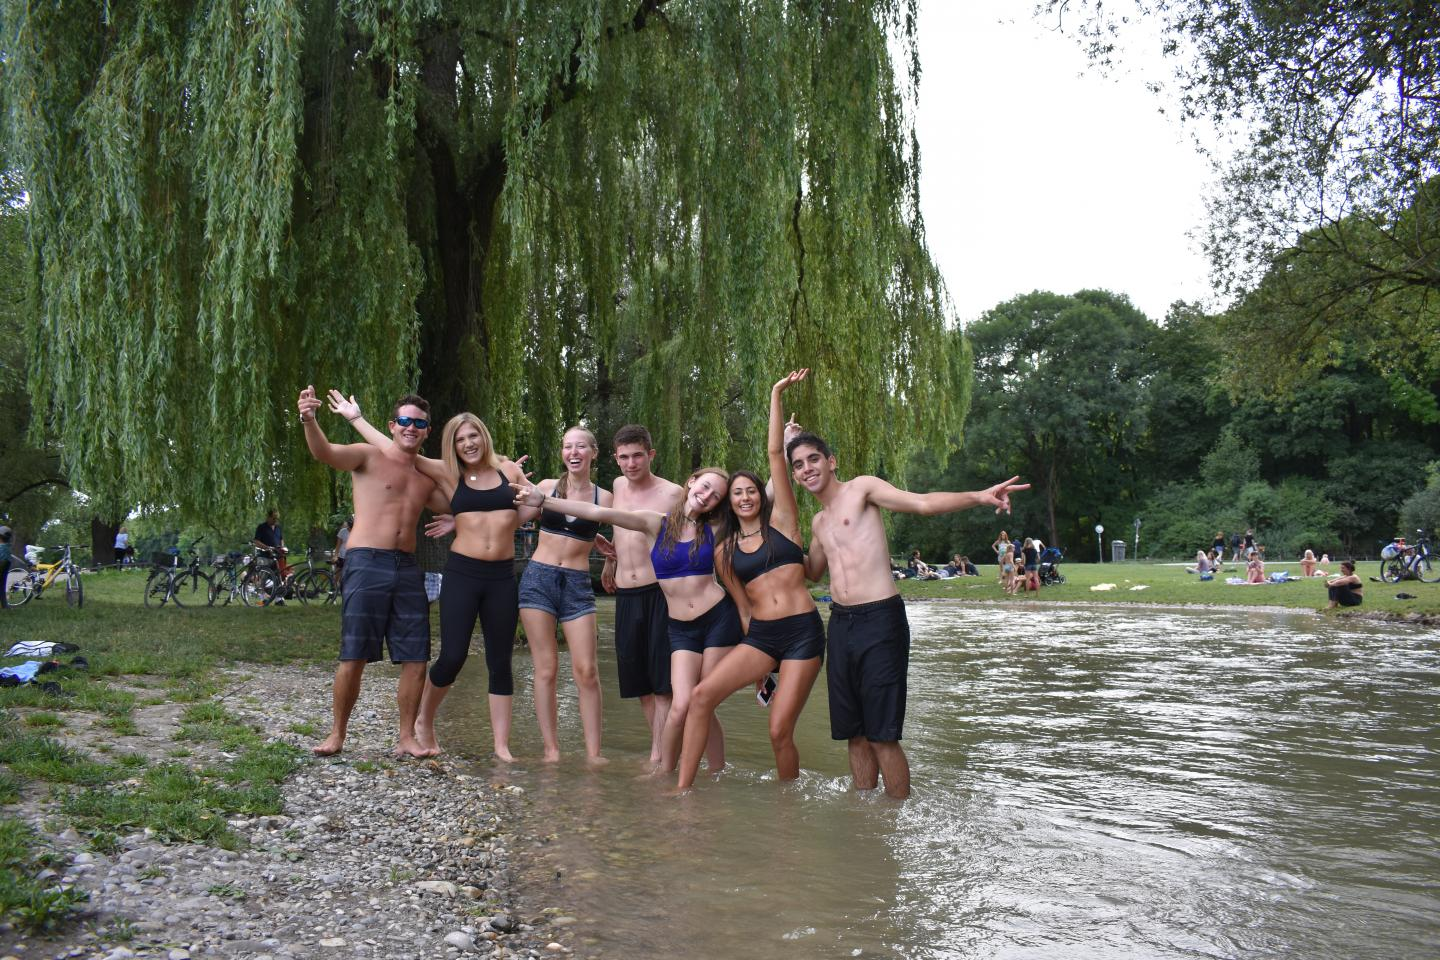 Teen travelers in Munich Englischer Garten during summer youth travel program